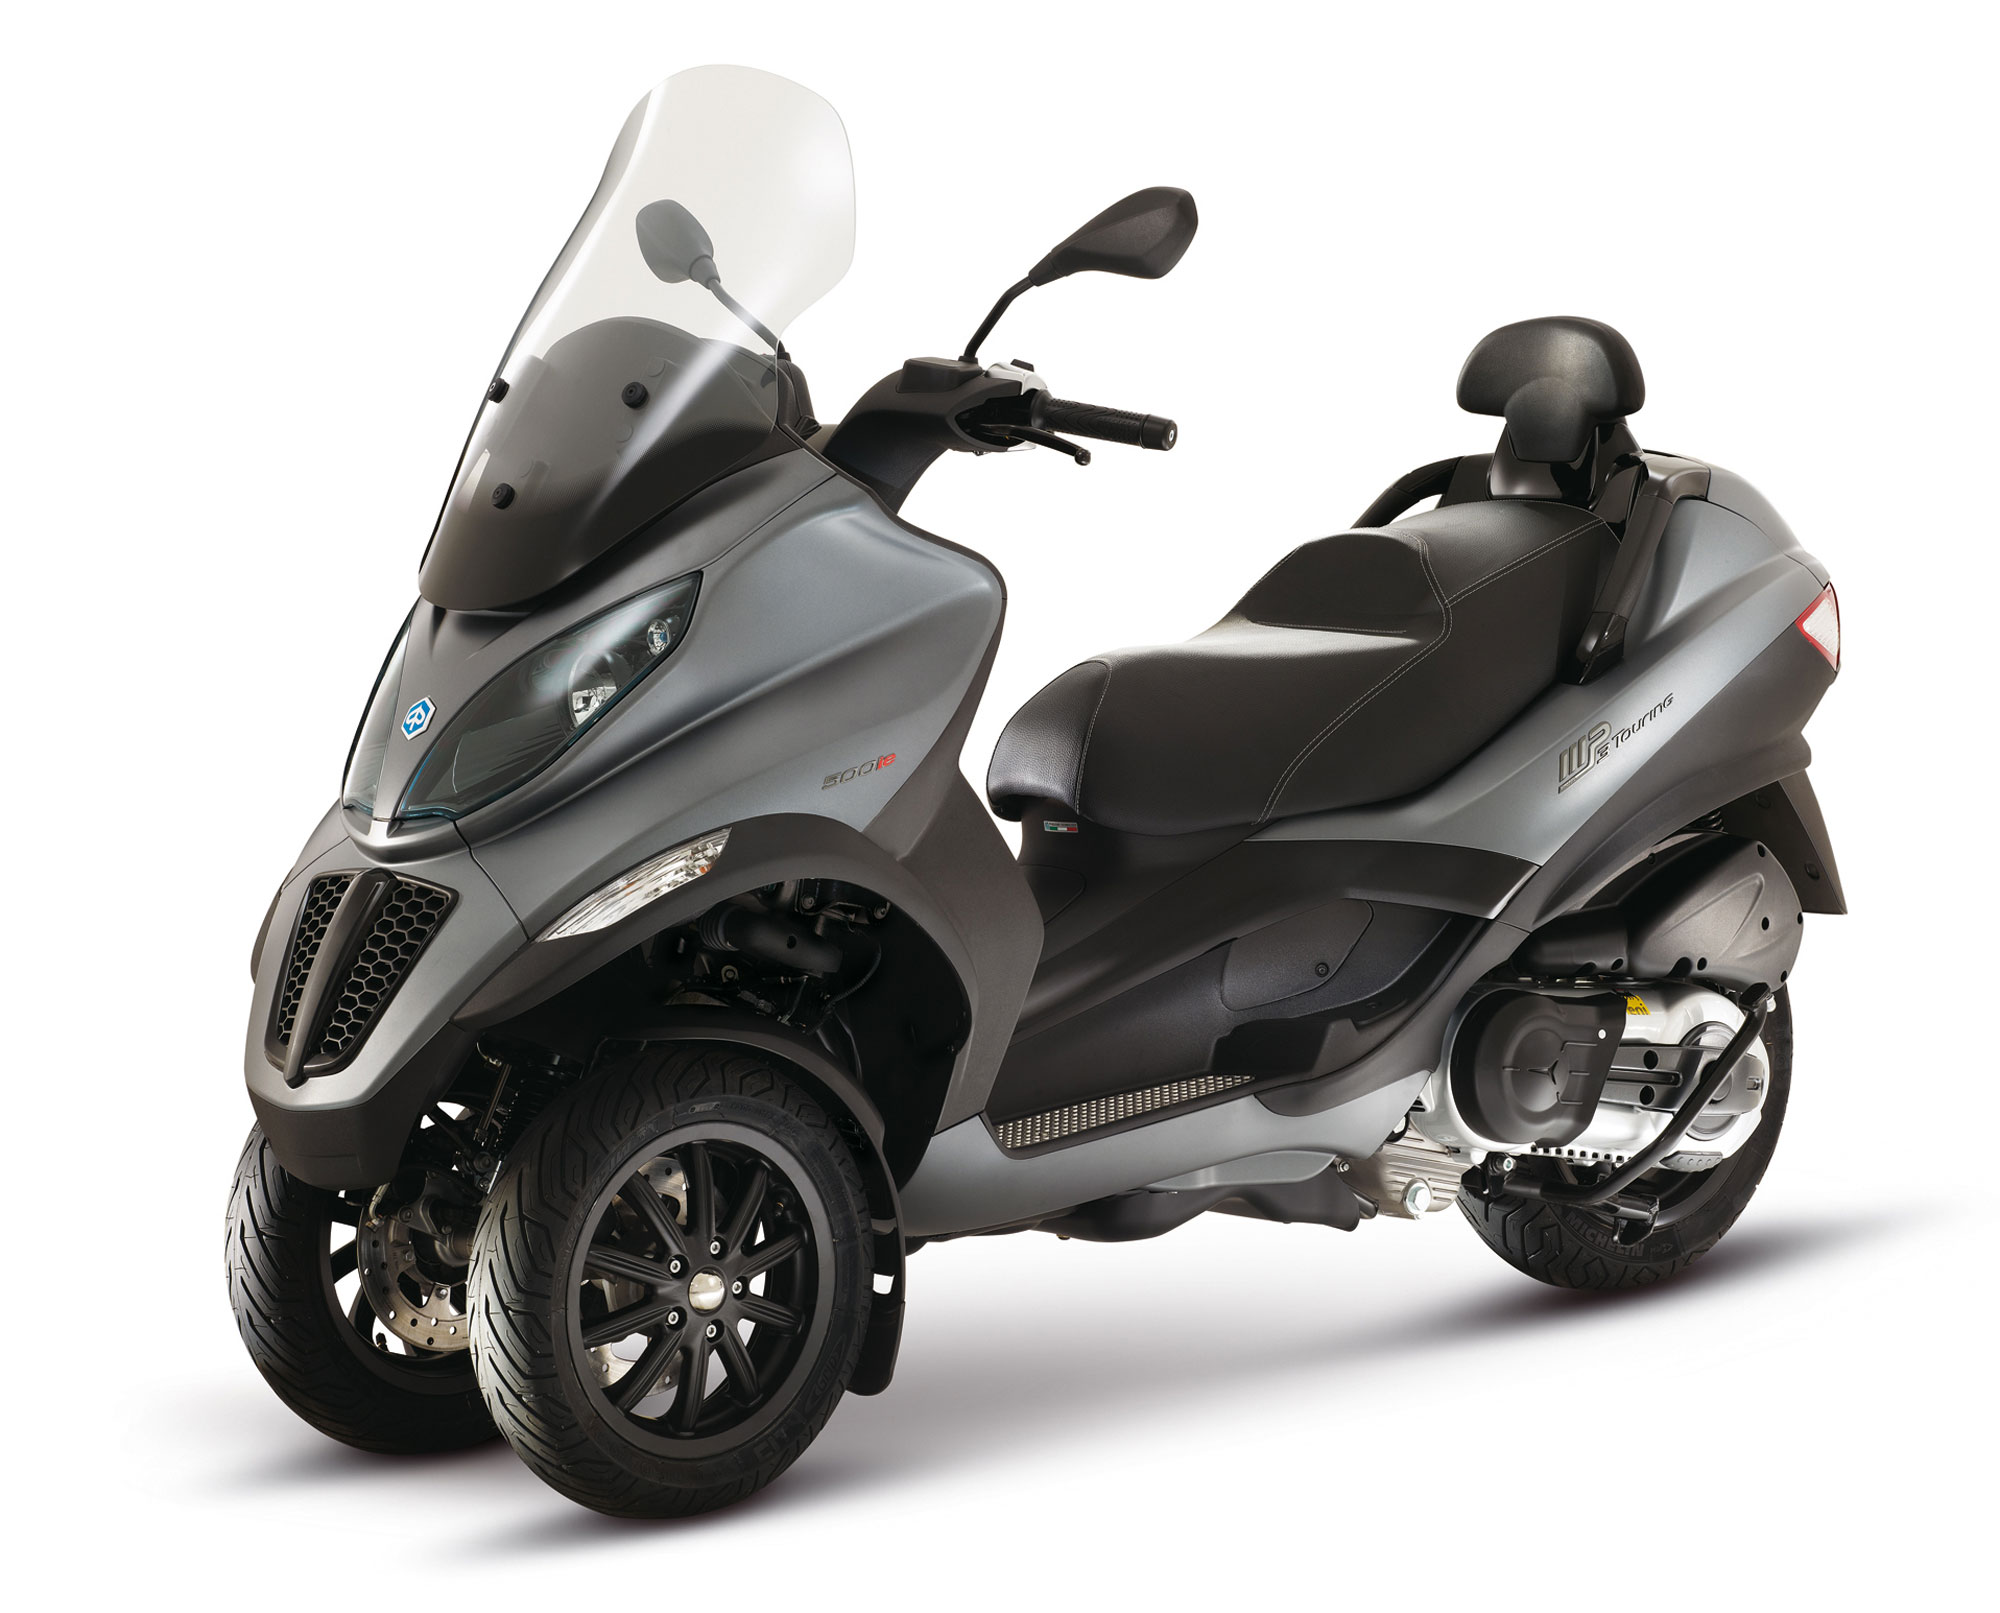 Piaggio MP3 Touring 125 2012 images #120335